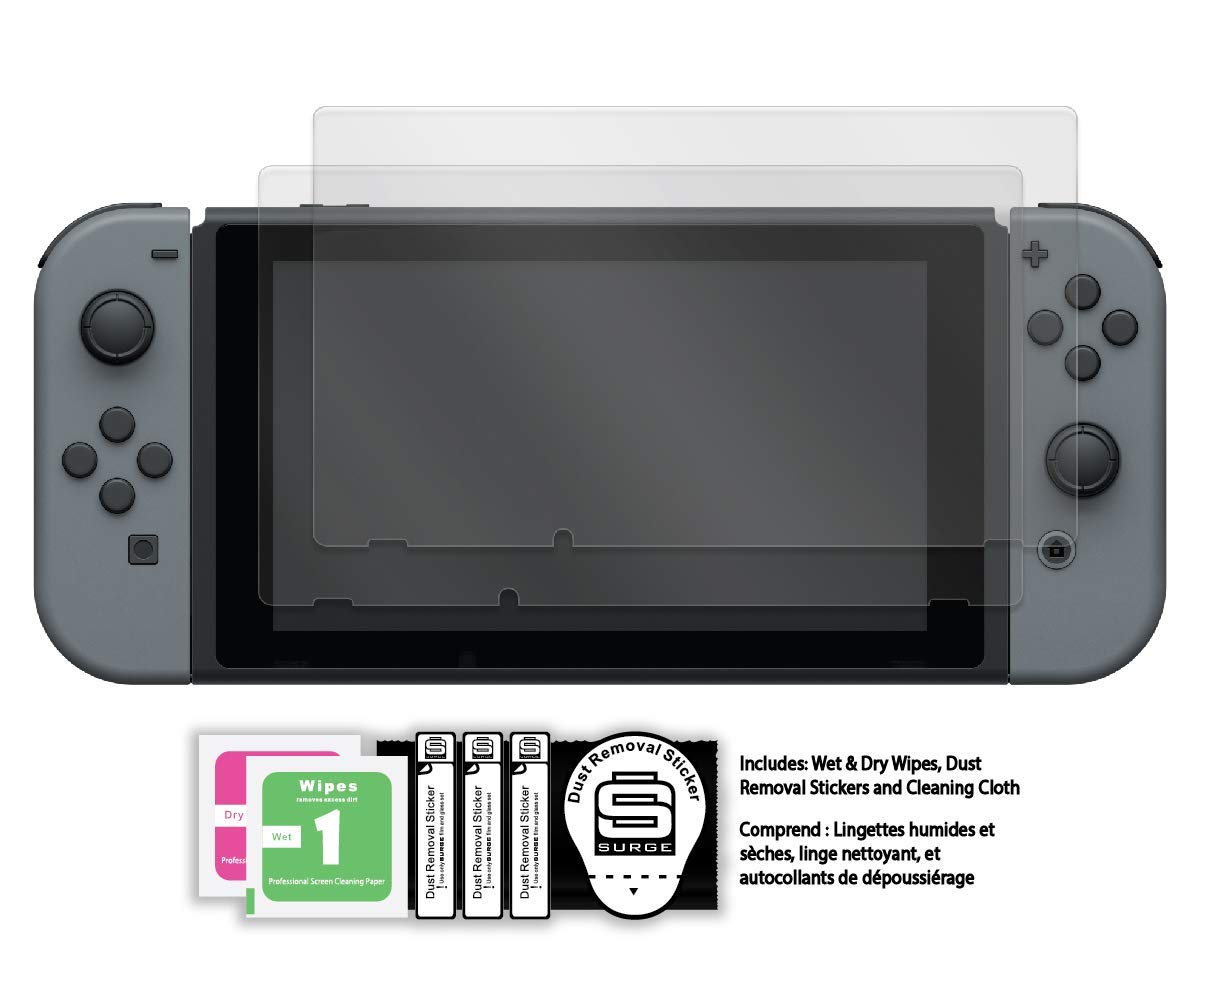 Surge Nintendo Switch Temperedshield Protectors Store Max 61% OFF Screen 2-Pack -